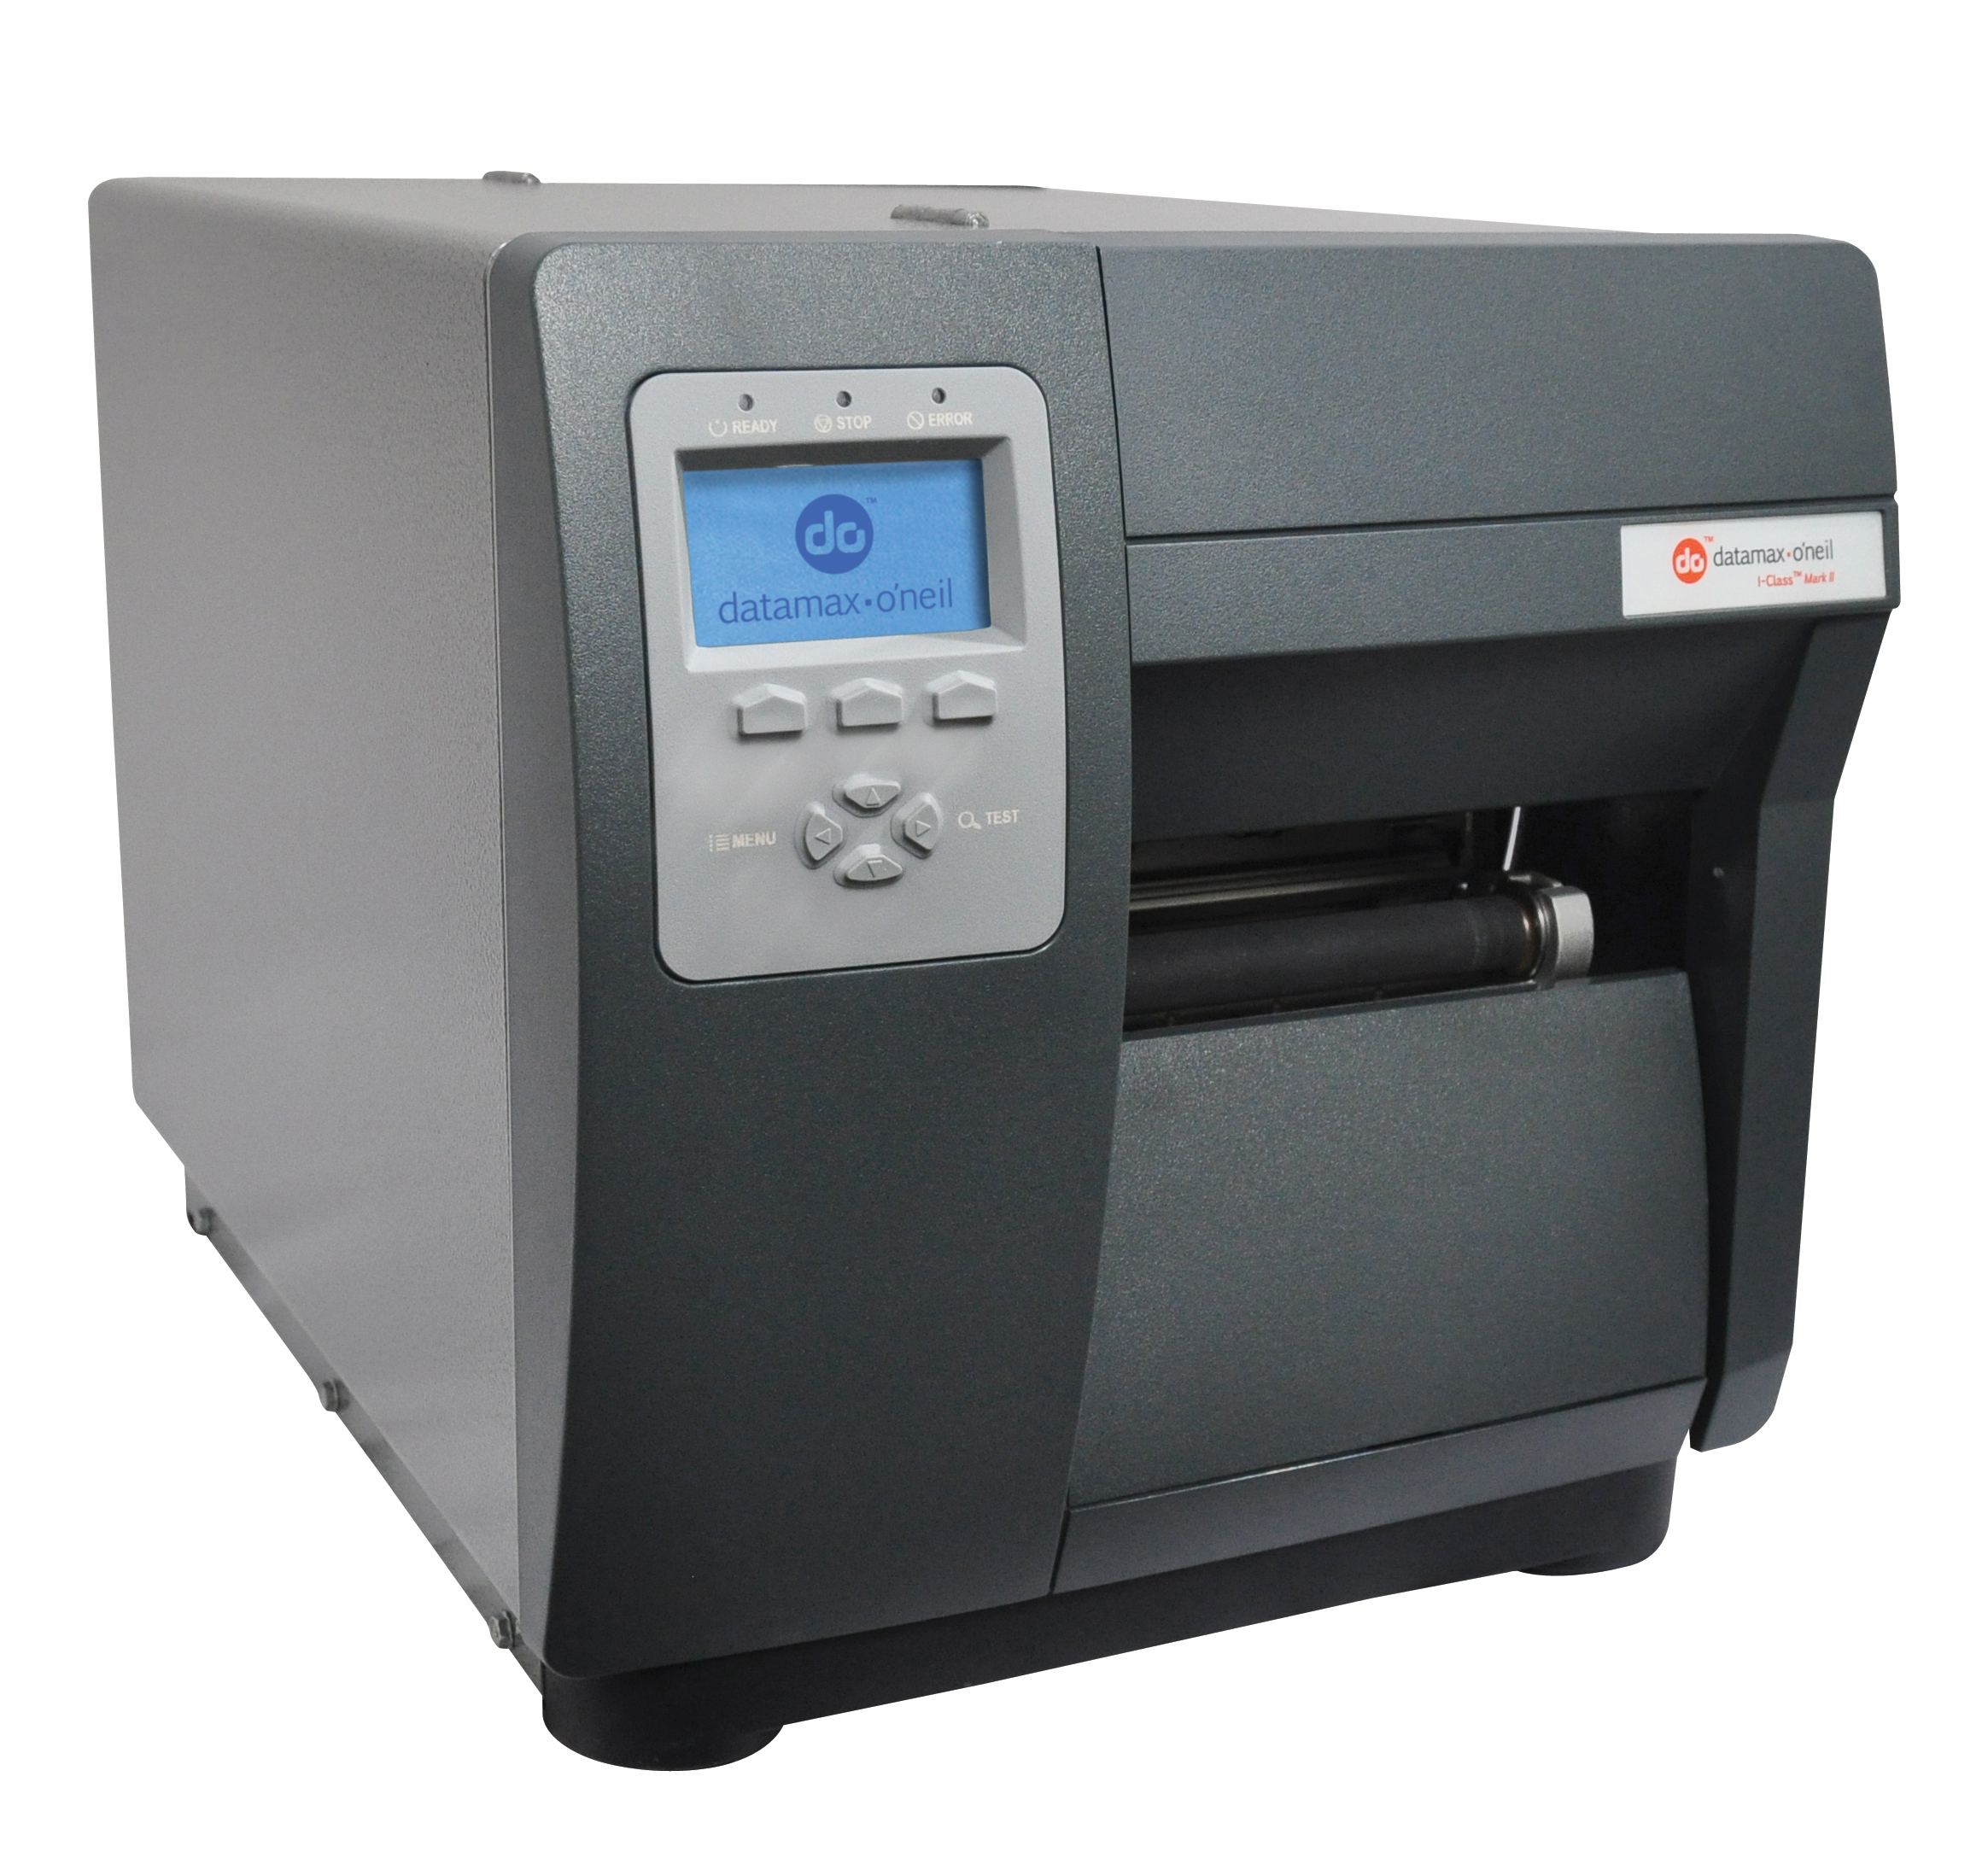 Image fo Datamax-O'Neil I-Class Mark II Printer from Emkat.